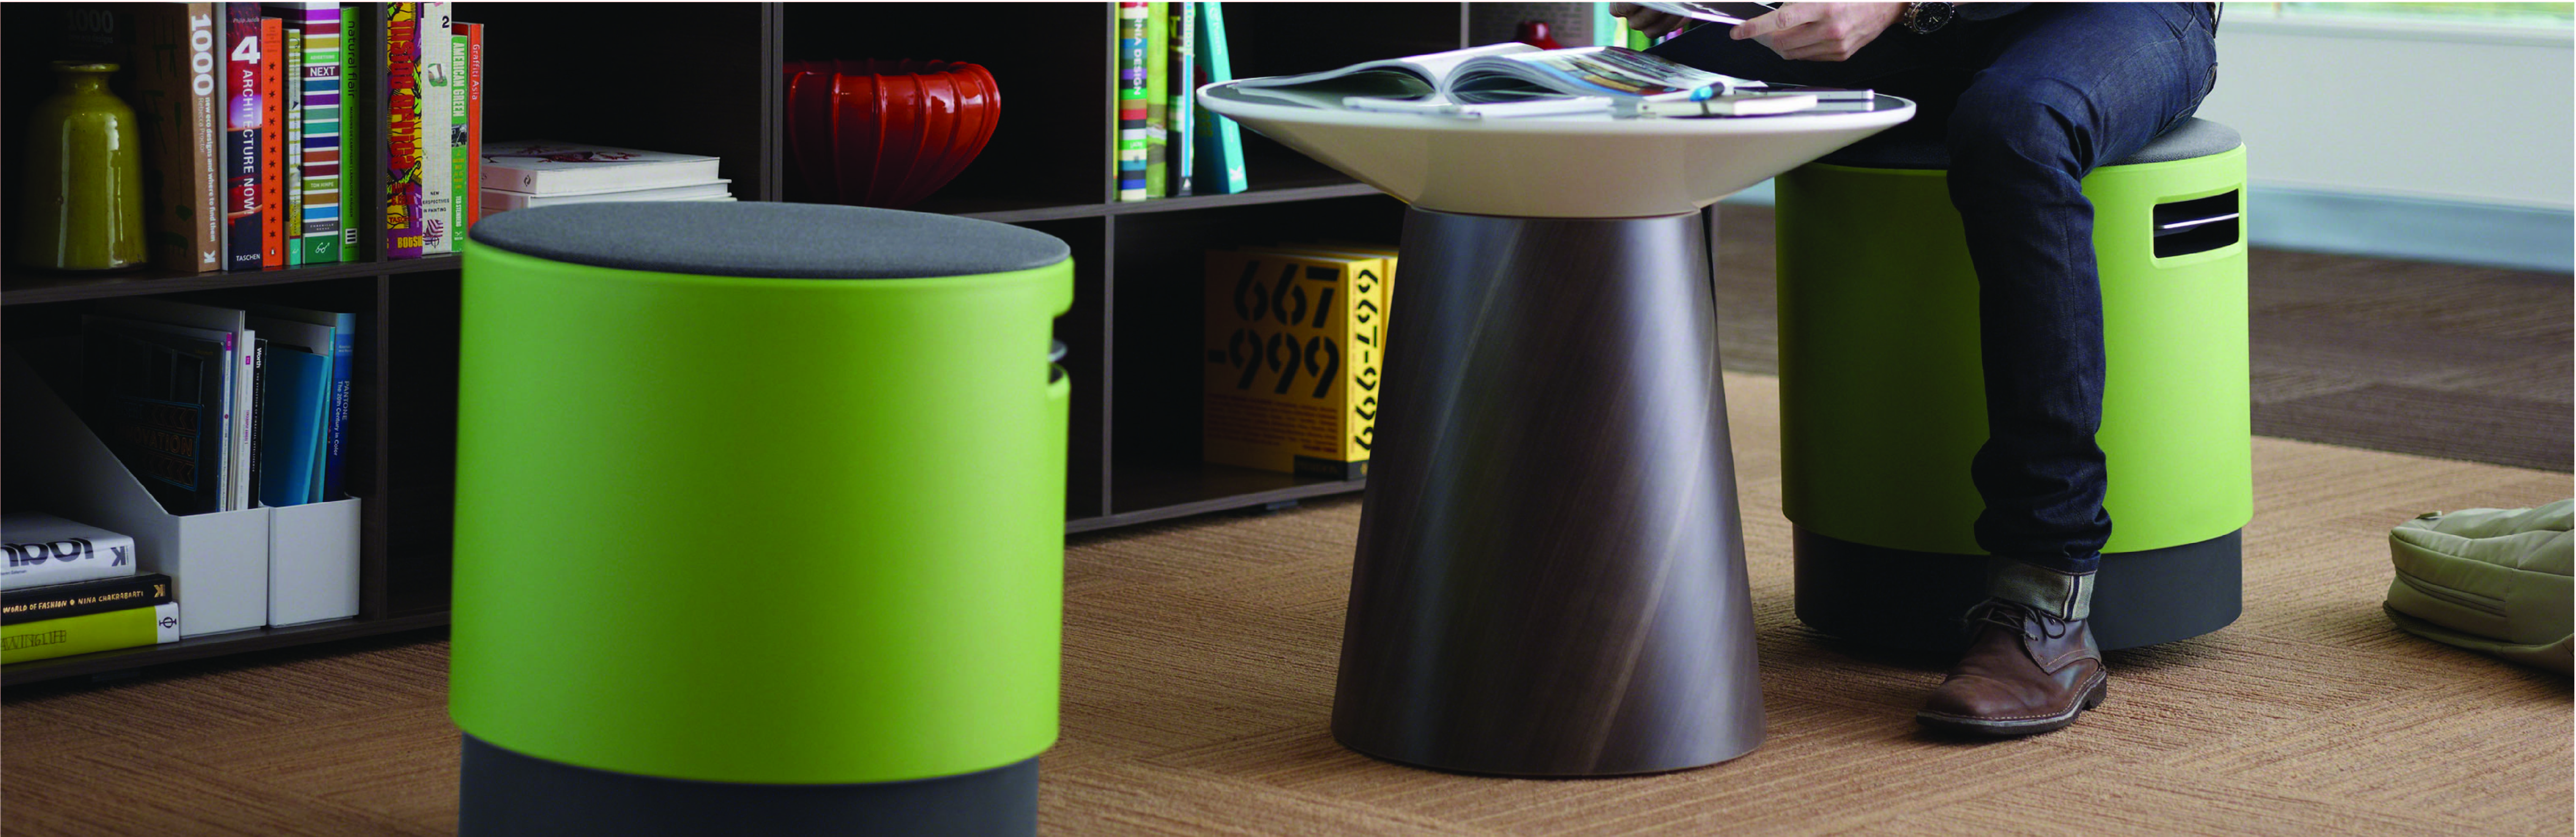 Buoy by Turnstone helps promote mindfulness at work